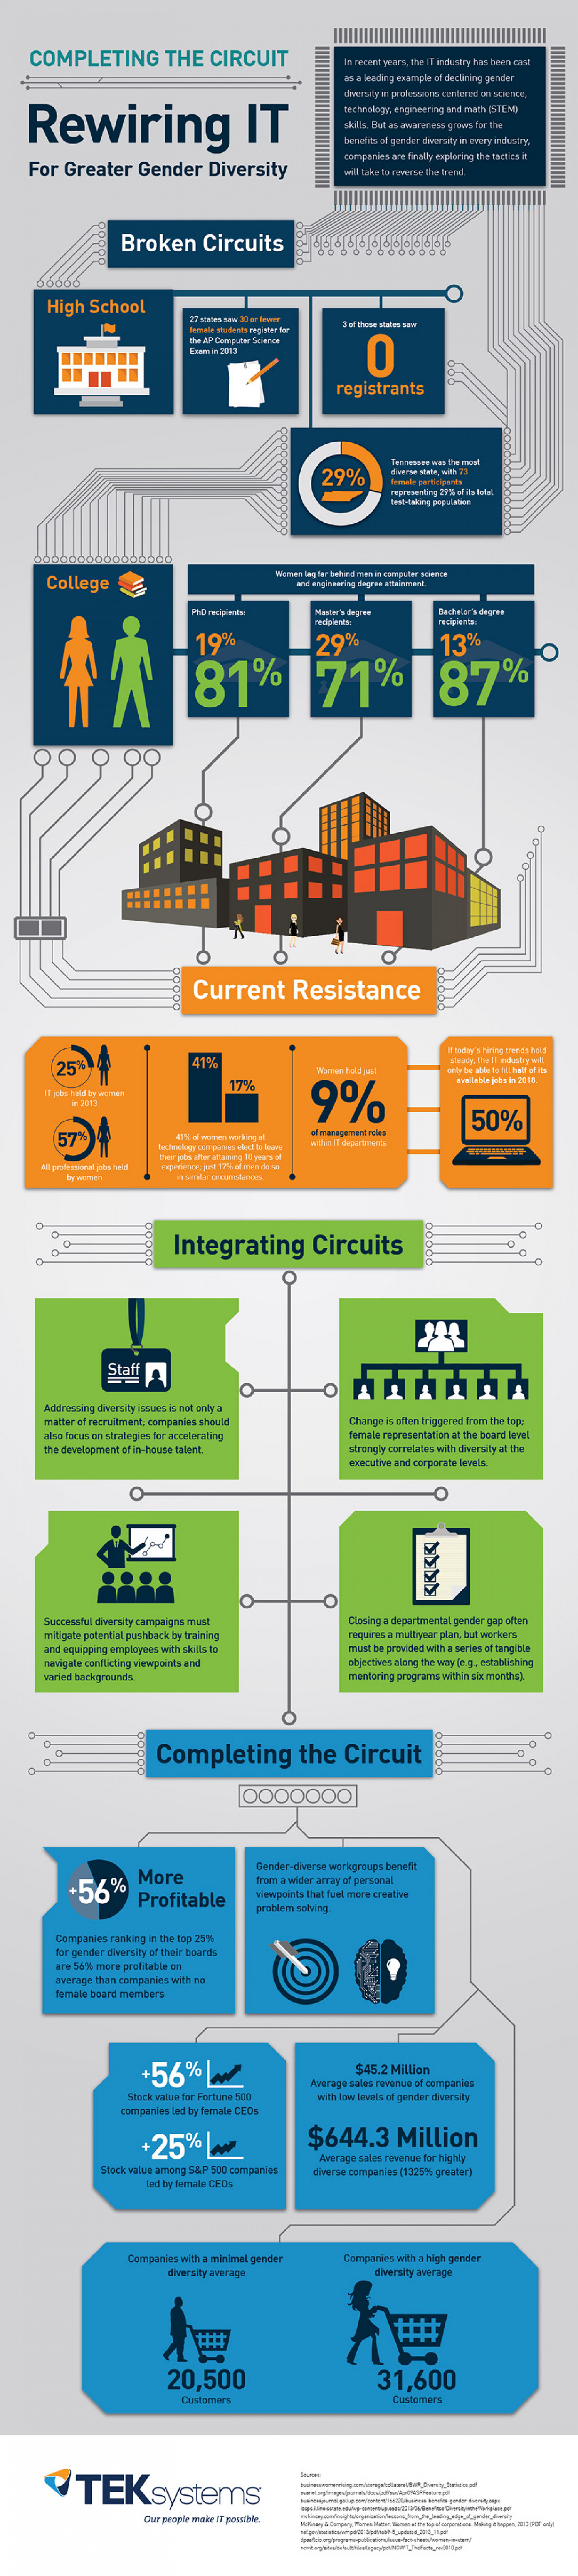 Women in the IT Industry Infographic